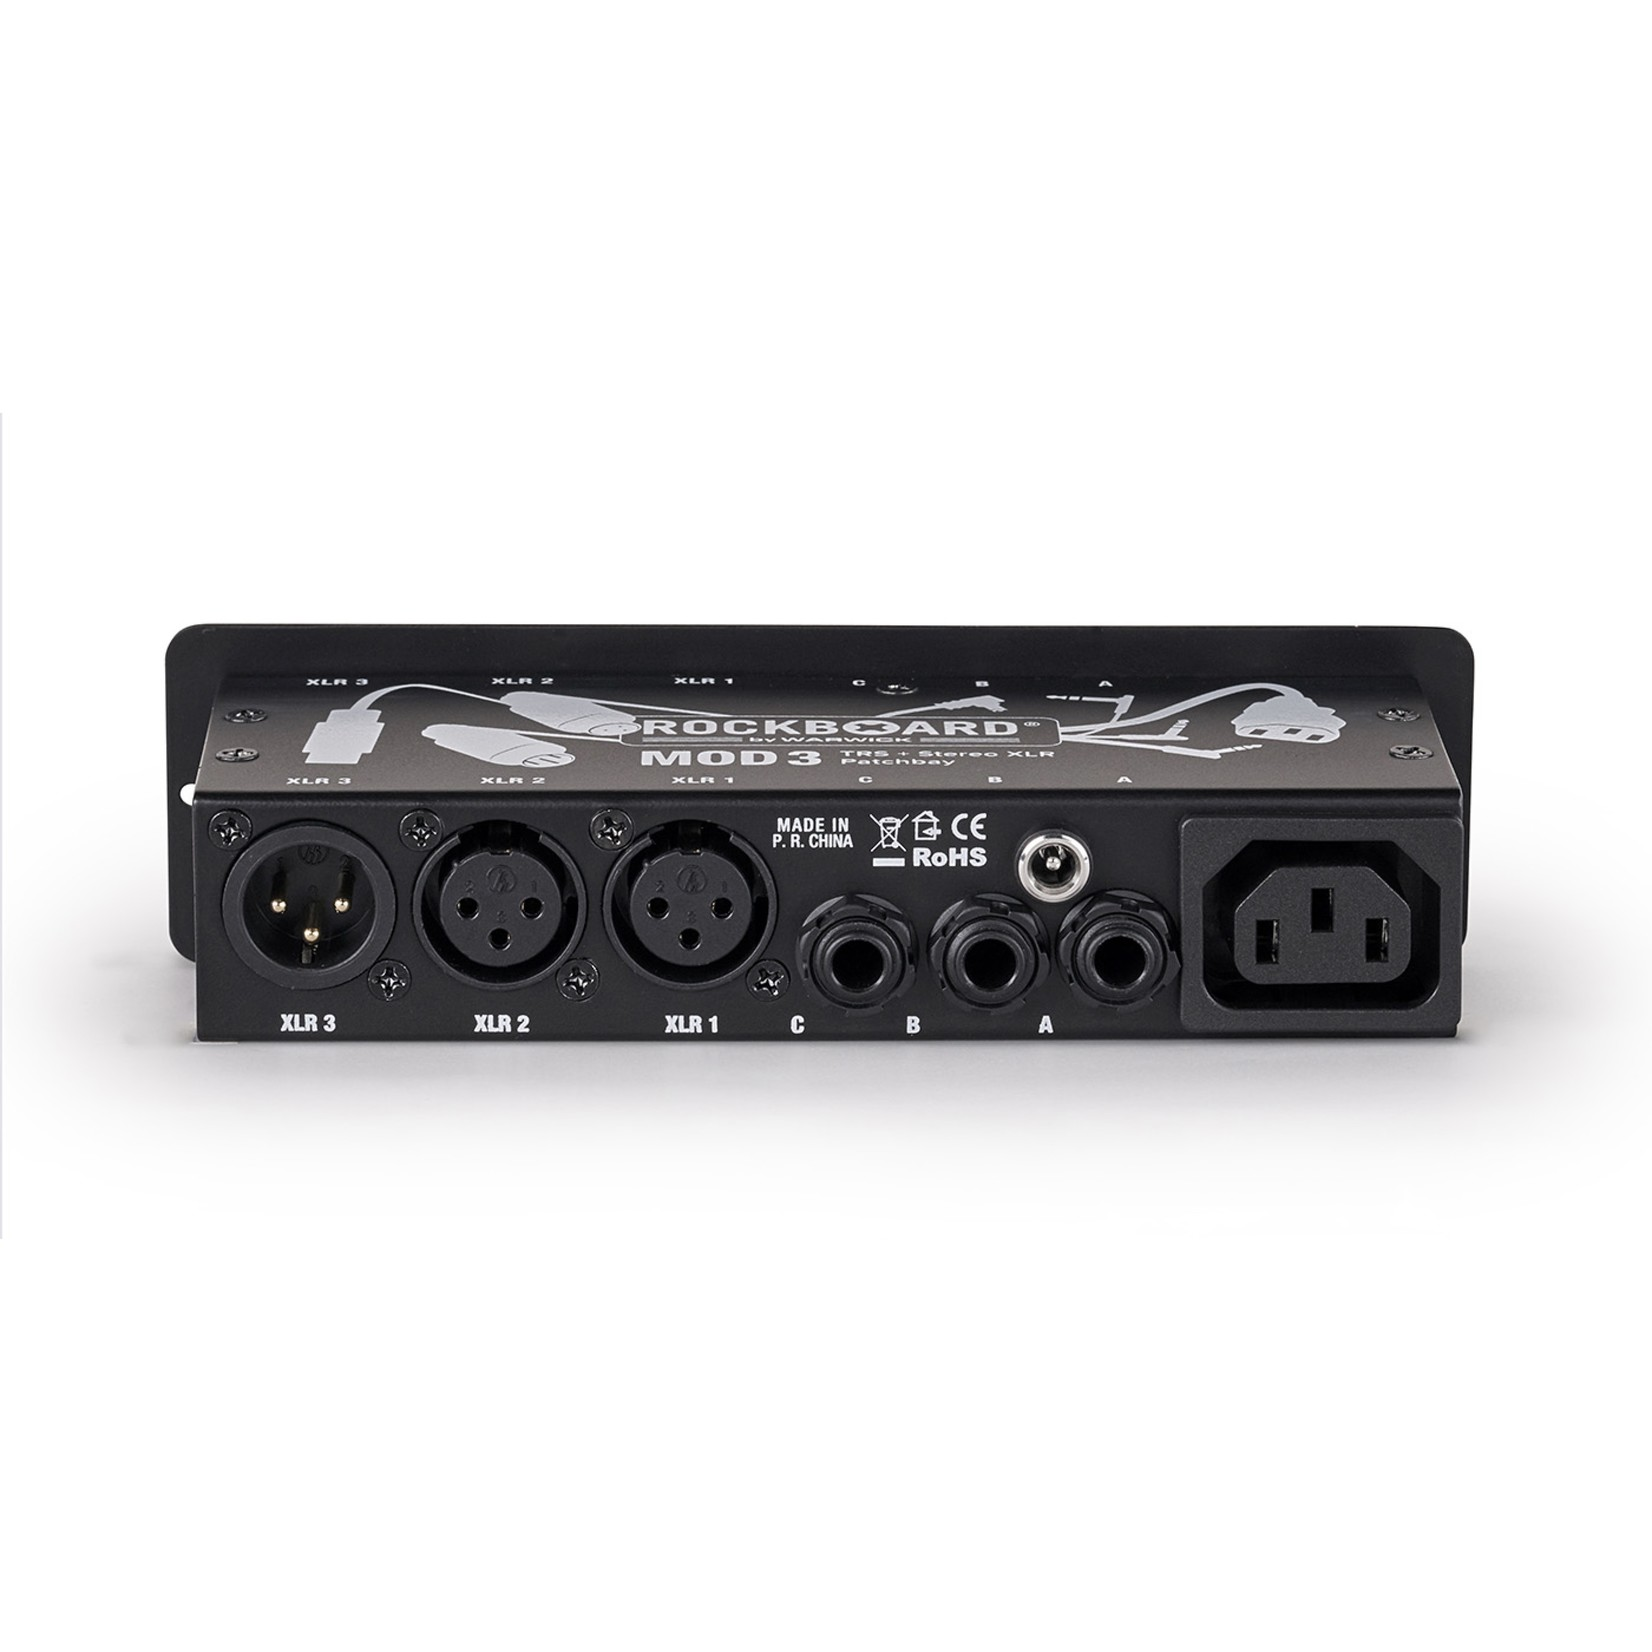 Rockboard Rockboard MOD3 v2 All-in-One TRS & Stereo XLR Patchbay for Vocalists & Acoustic Players